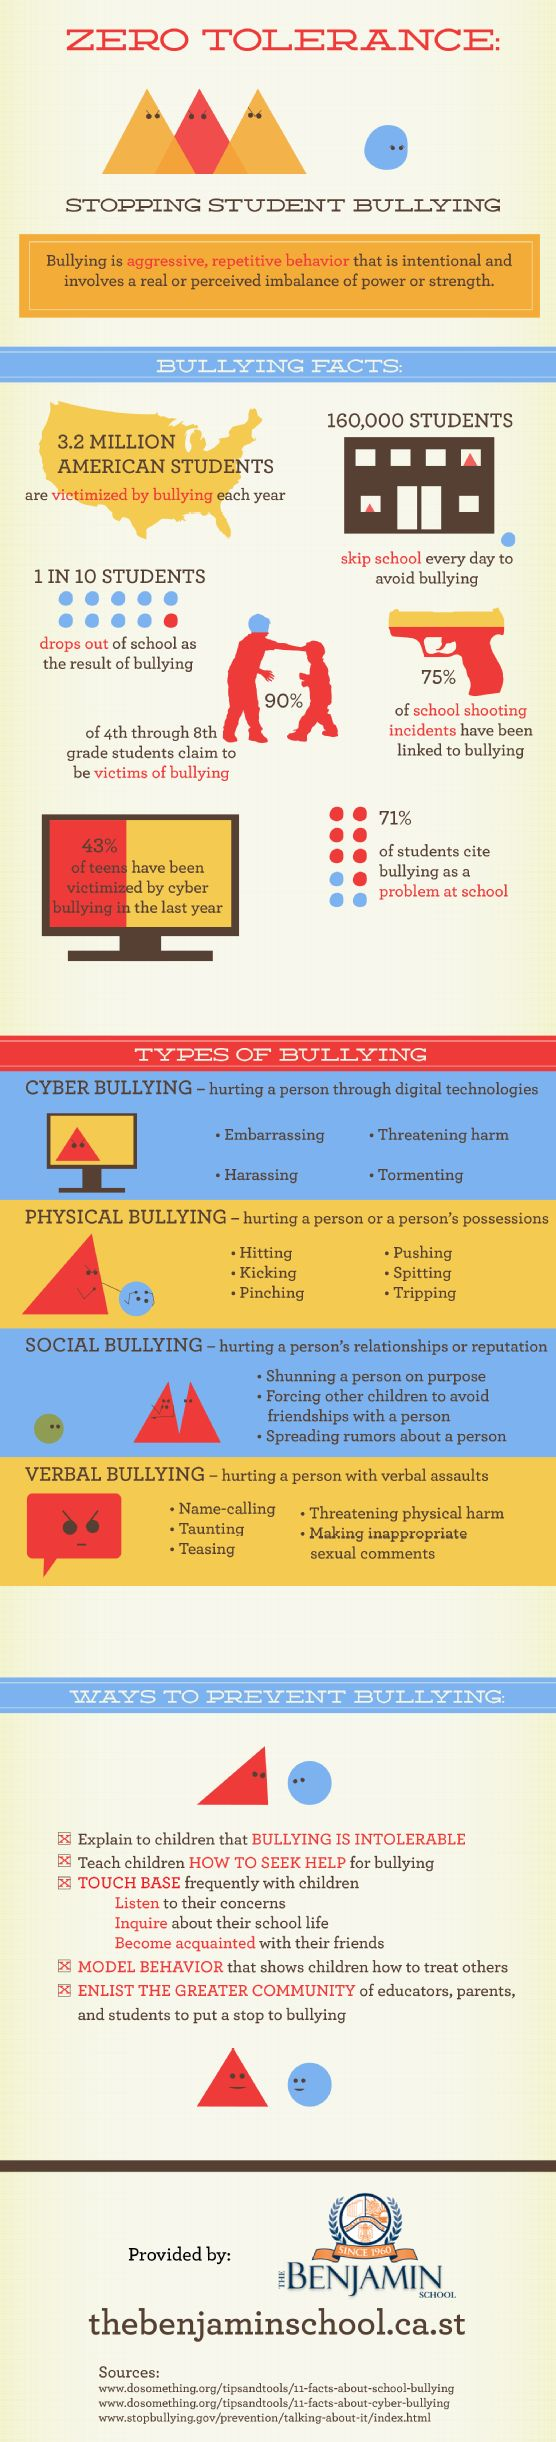 Social bullying occurs when someone intentionally hurts a person's relationship or reputation. This form of bullying includes shunning someone on pu: